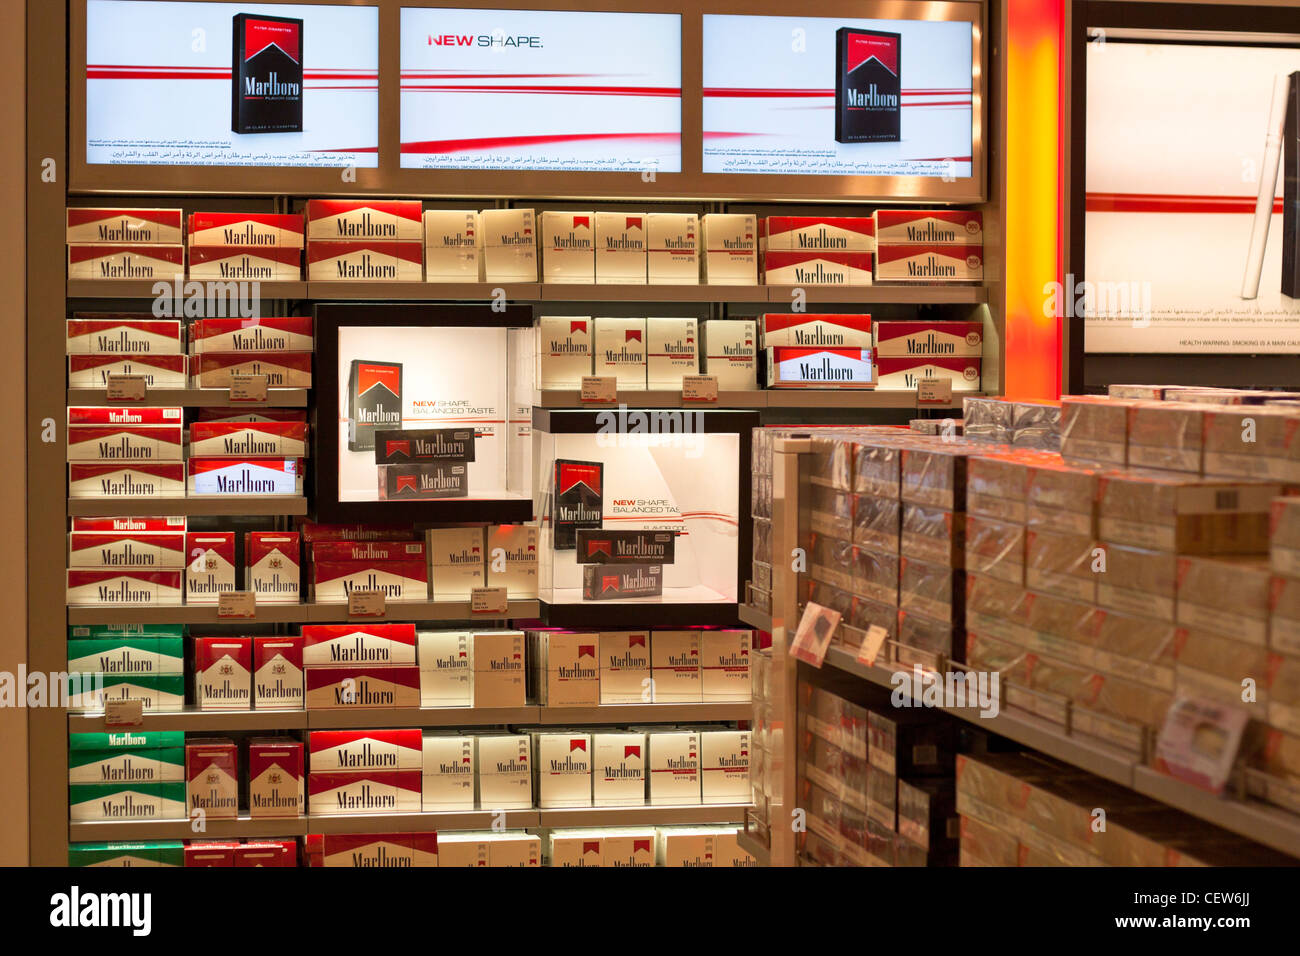 Cigarettes Marlboro shopping results